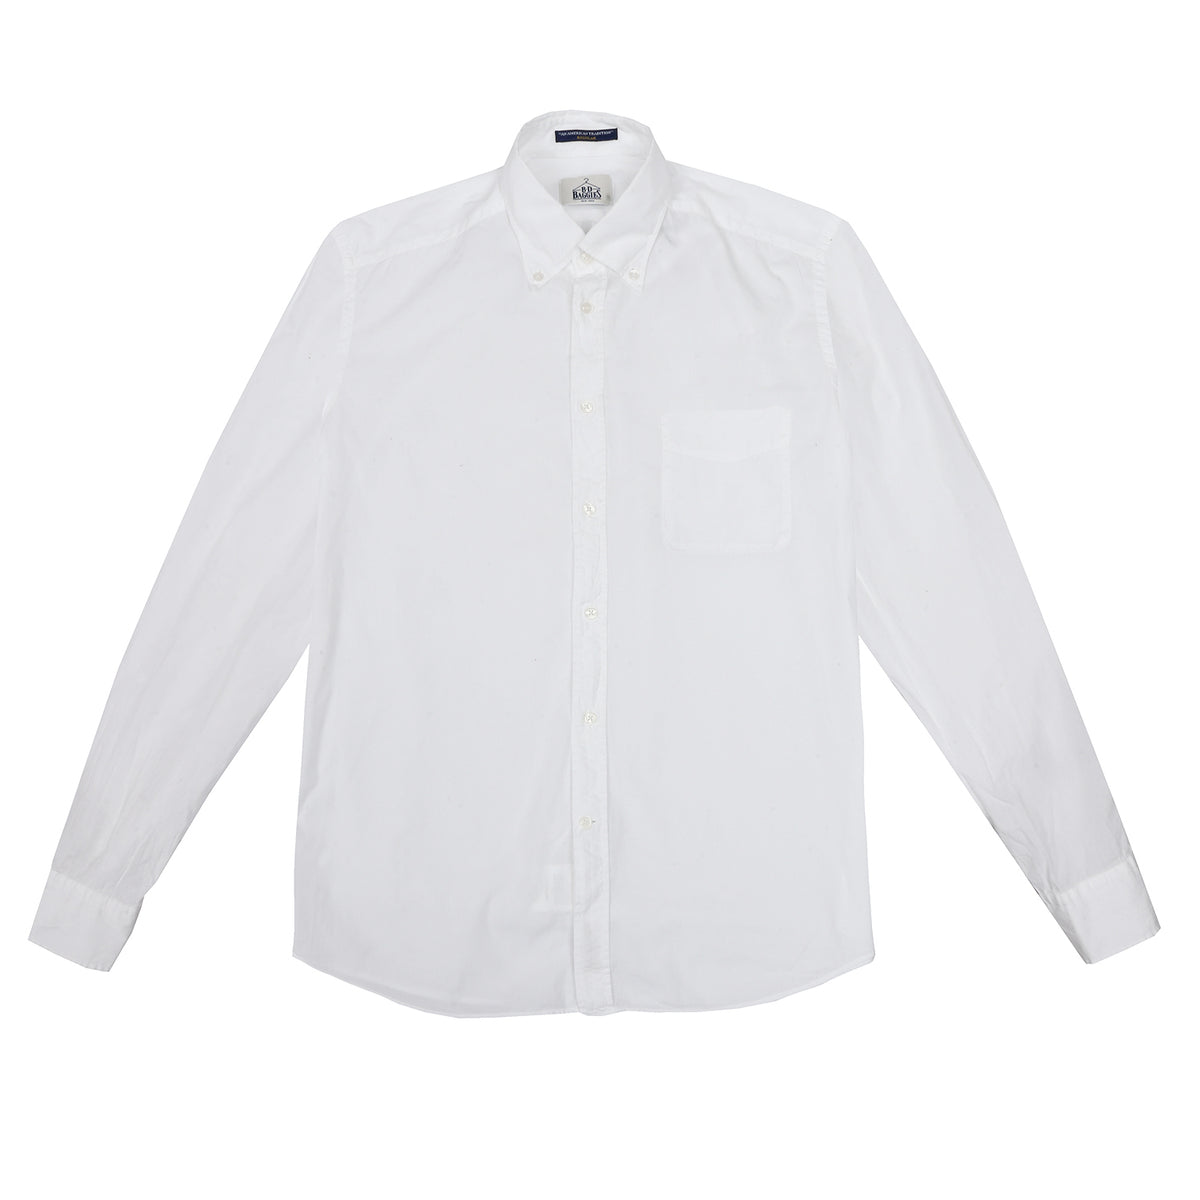 B.D. Baggies - Bradford Button Down - White (Lightweight)